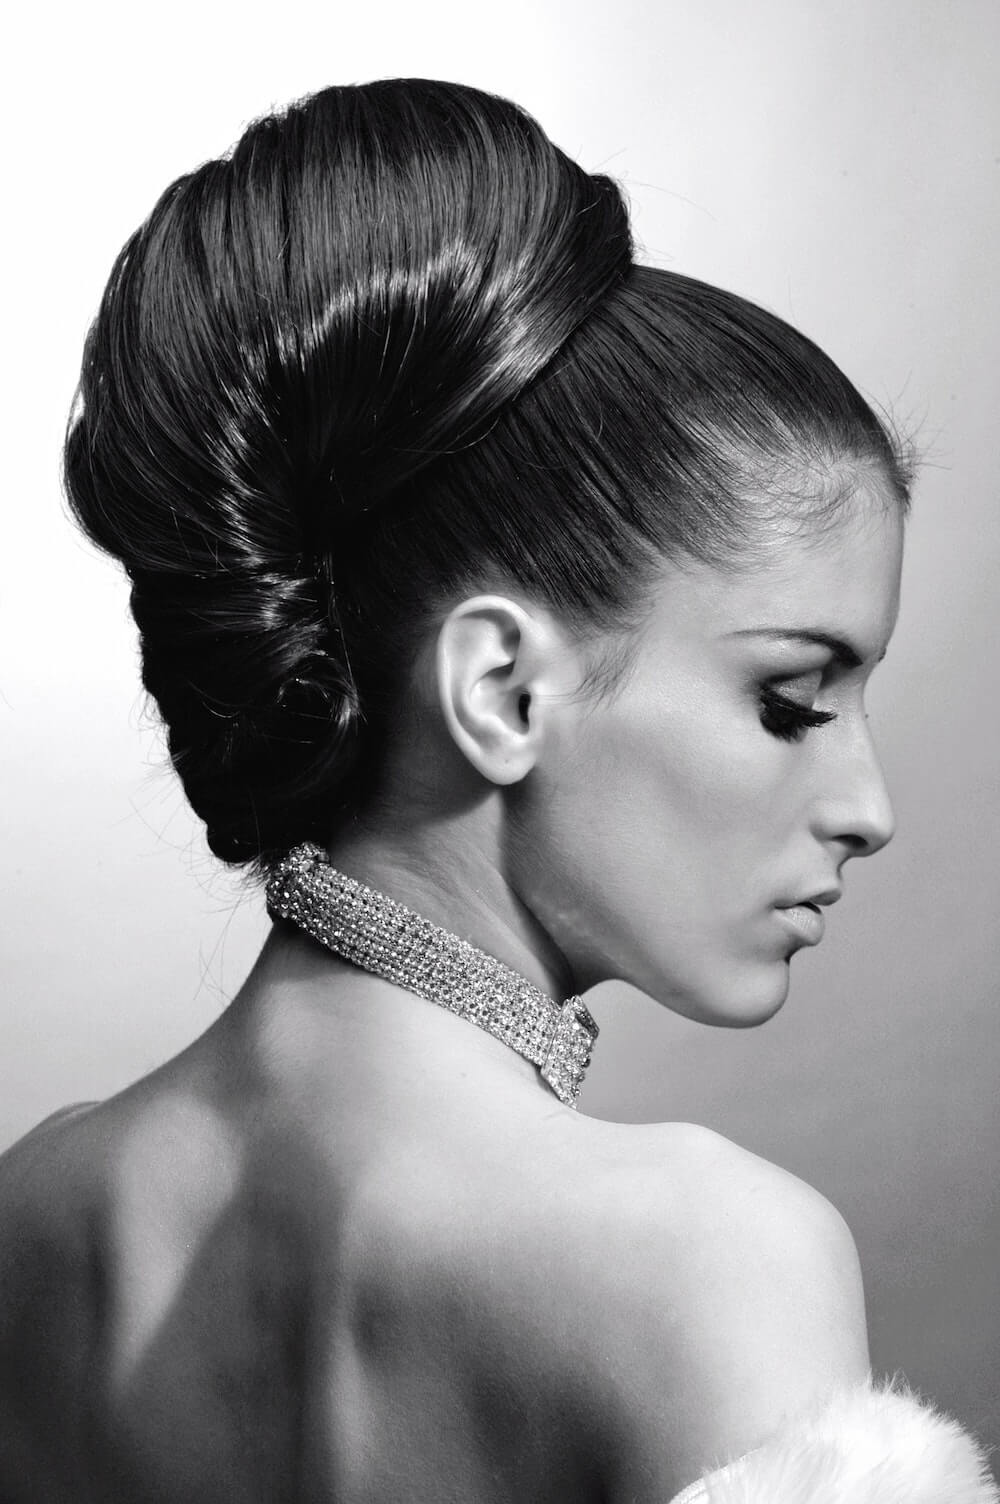 Black and white photo of woman with sleek hairstyle